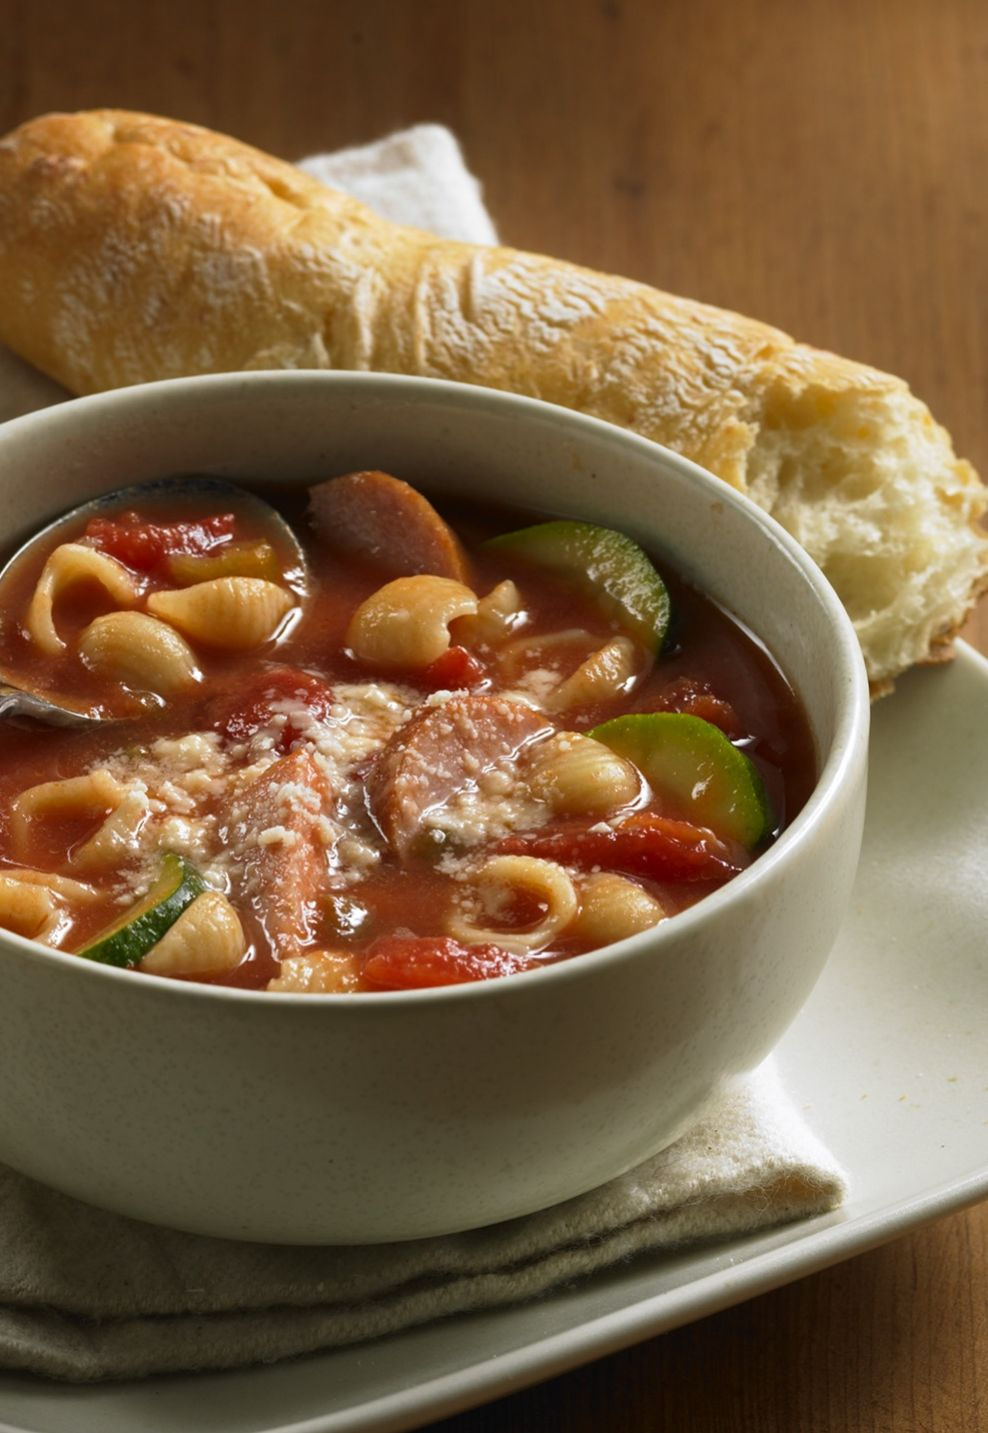 Warm up with this quick-and-easy soup featuring smoked sausage, zucchini, stewed tomatoes and macaroni.